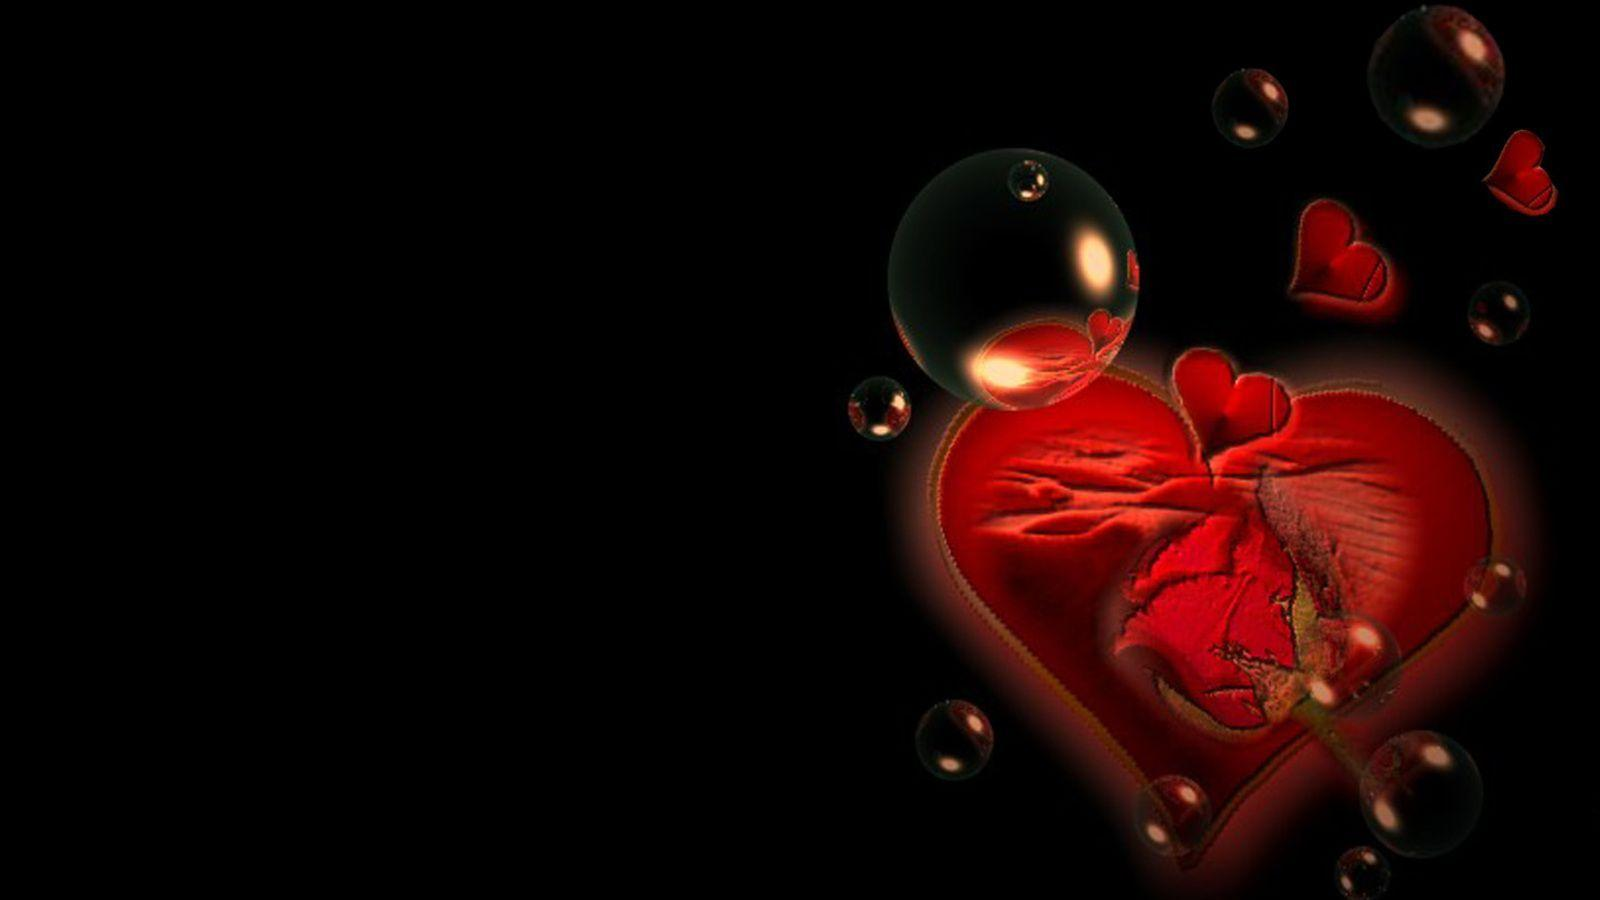 Wallpaper Hd 3d I Love You : Love 3D Wallpapers - Wallpaper cave